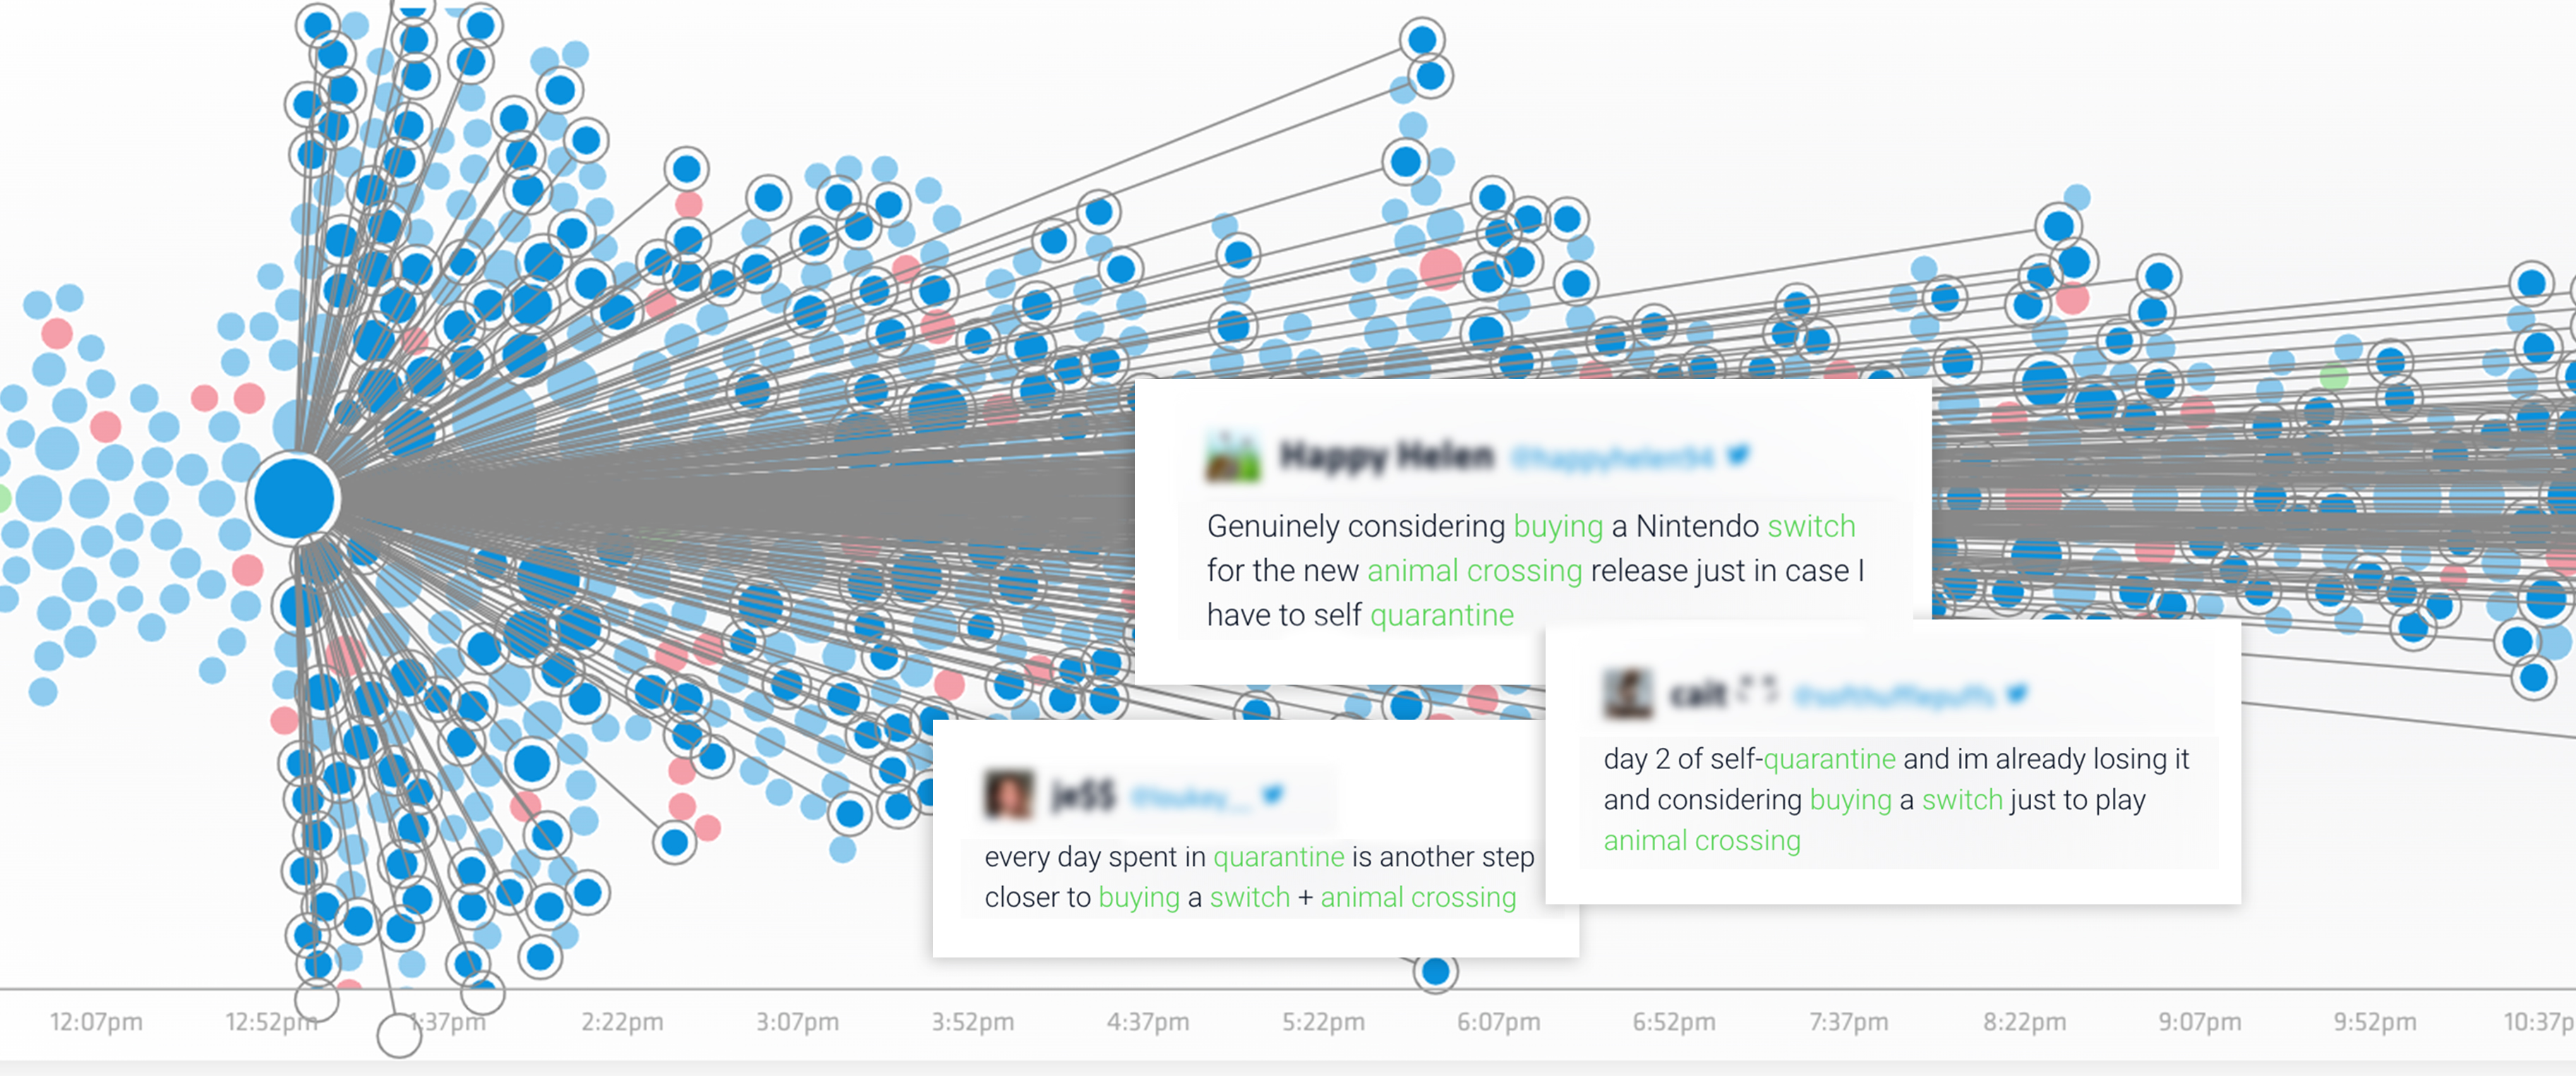 The image shows the bubble stream in Nuvi Listen, Nuvi's social listening tool. Many blue or neutral bubbles are highlighted and connected with dots to show how much the conversation has spread. Three tweets rest over the bubble stream to show what the conversation is about. The tweets read: genuinely considering buying a Nintendo switch for the new animal crossing release just in case I have to self-quarantine, Every day spent in quarantine is another step closer to buying a switch+ animal crossing, day 2 of self-quarantine and I'm already losing it and considering buying a switch just to play animal crossing